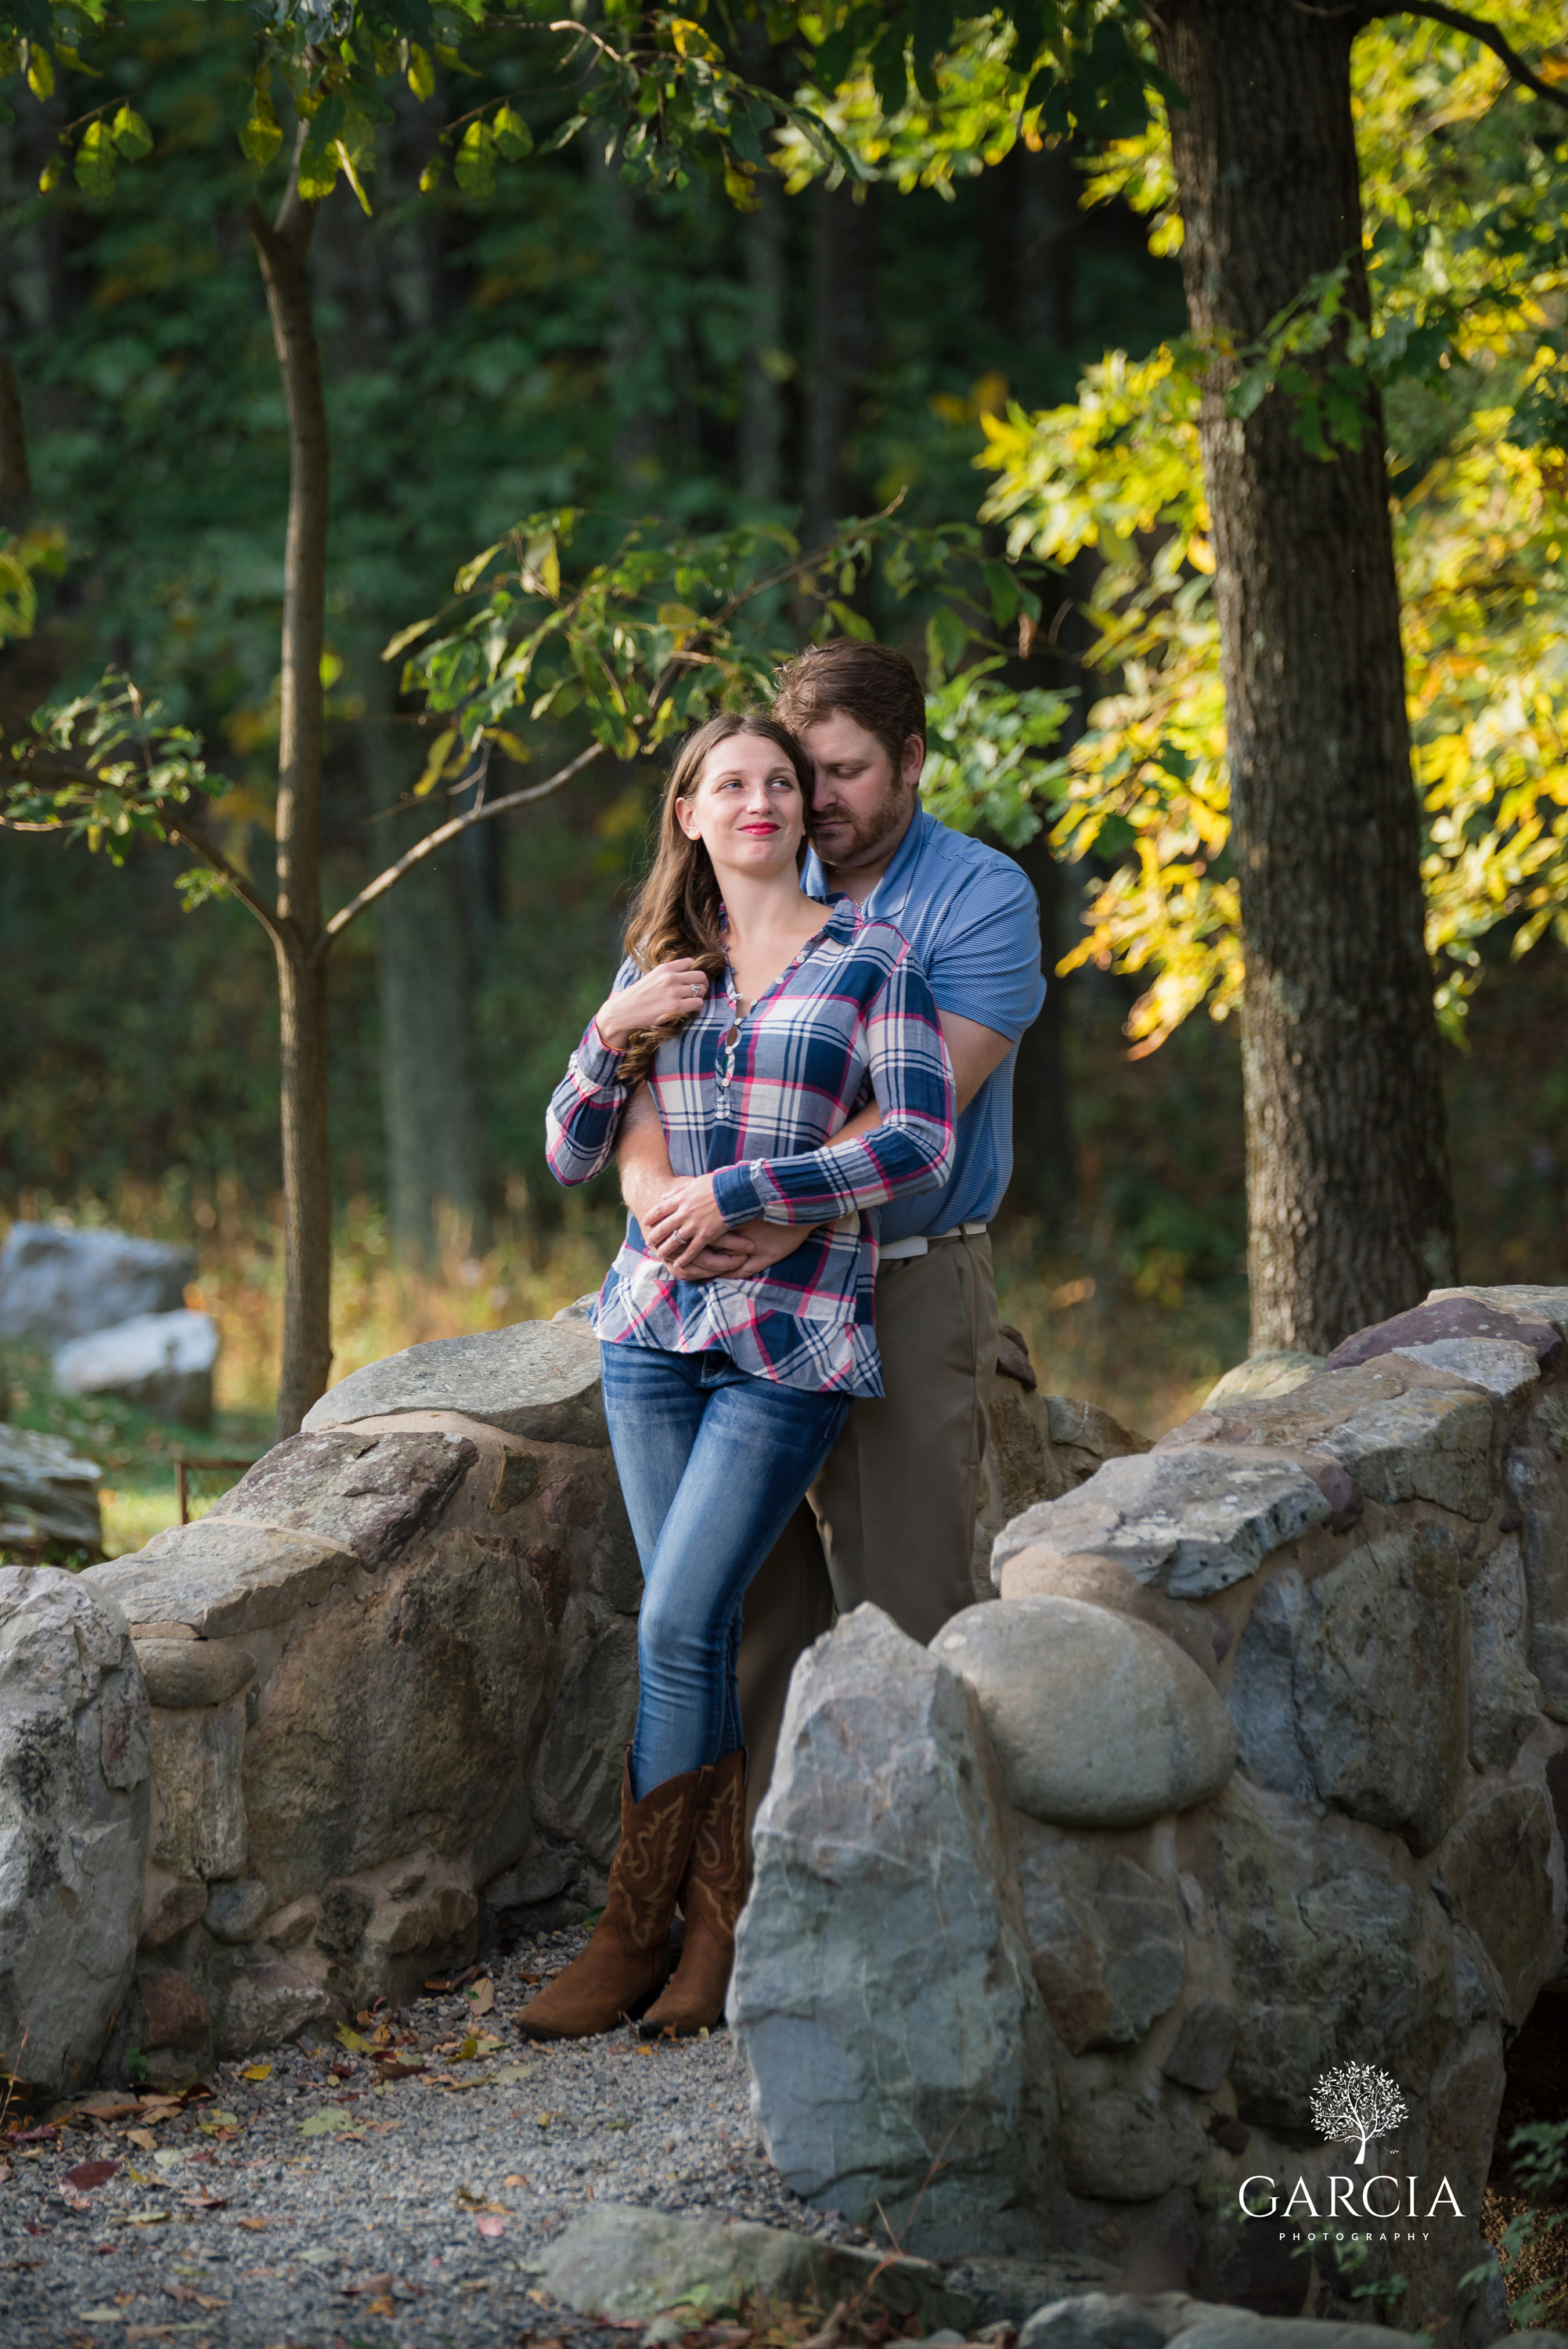 Christine-Shane-Engagement-Garcia-Photography-0553.jpg